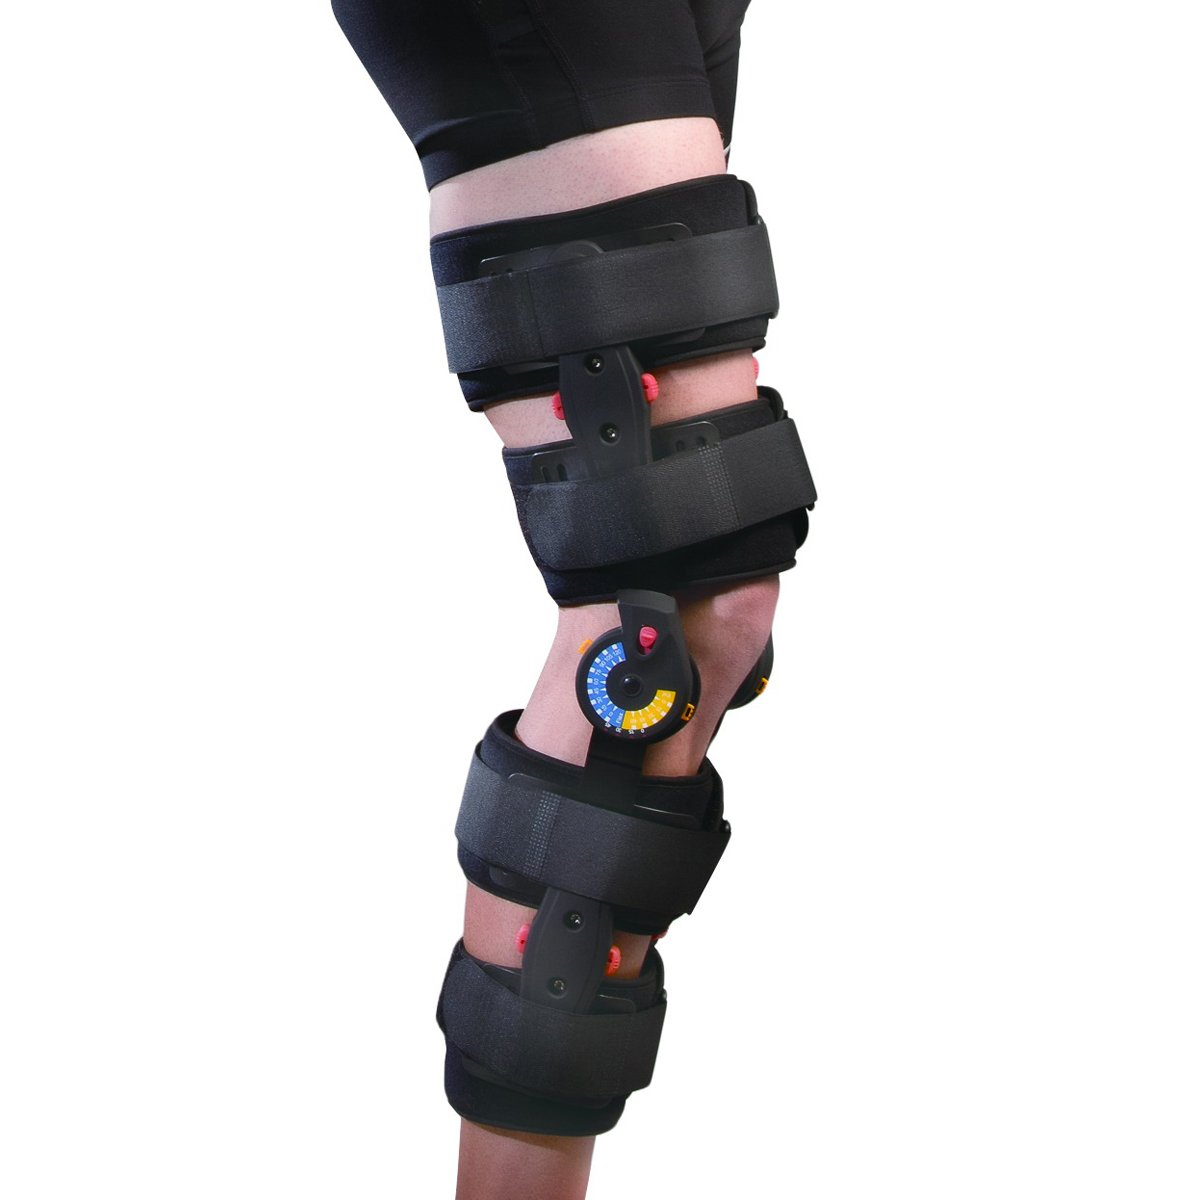 Orthomen Medical Post-operative Knee Brace - (Size: Universal) Knee Supporter Therapy Knee Pain Knee Protection by Orthomen